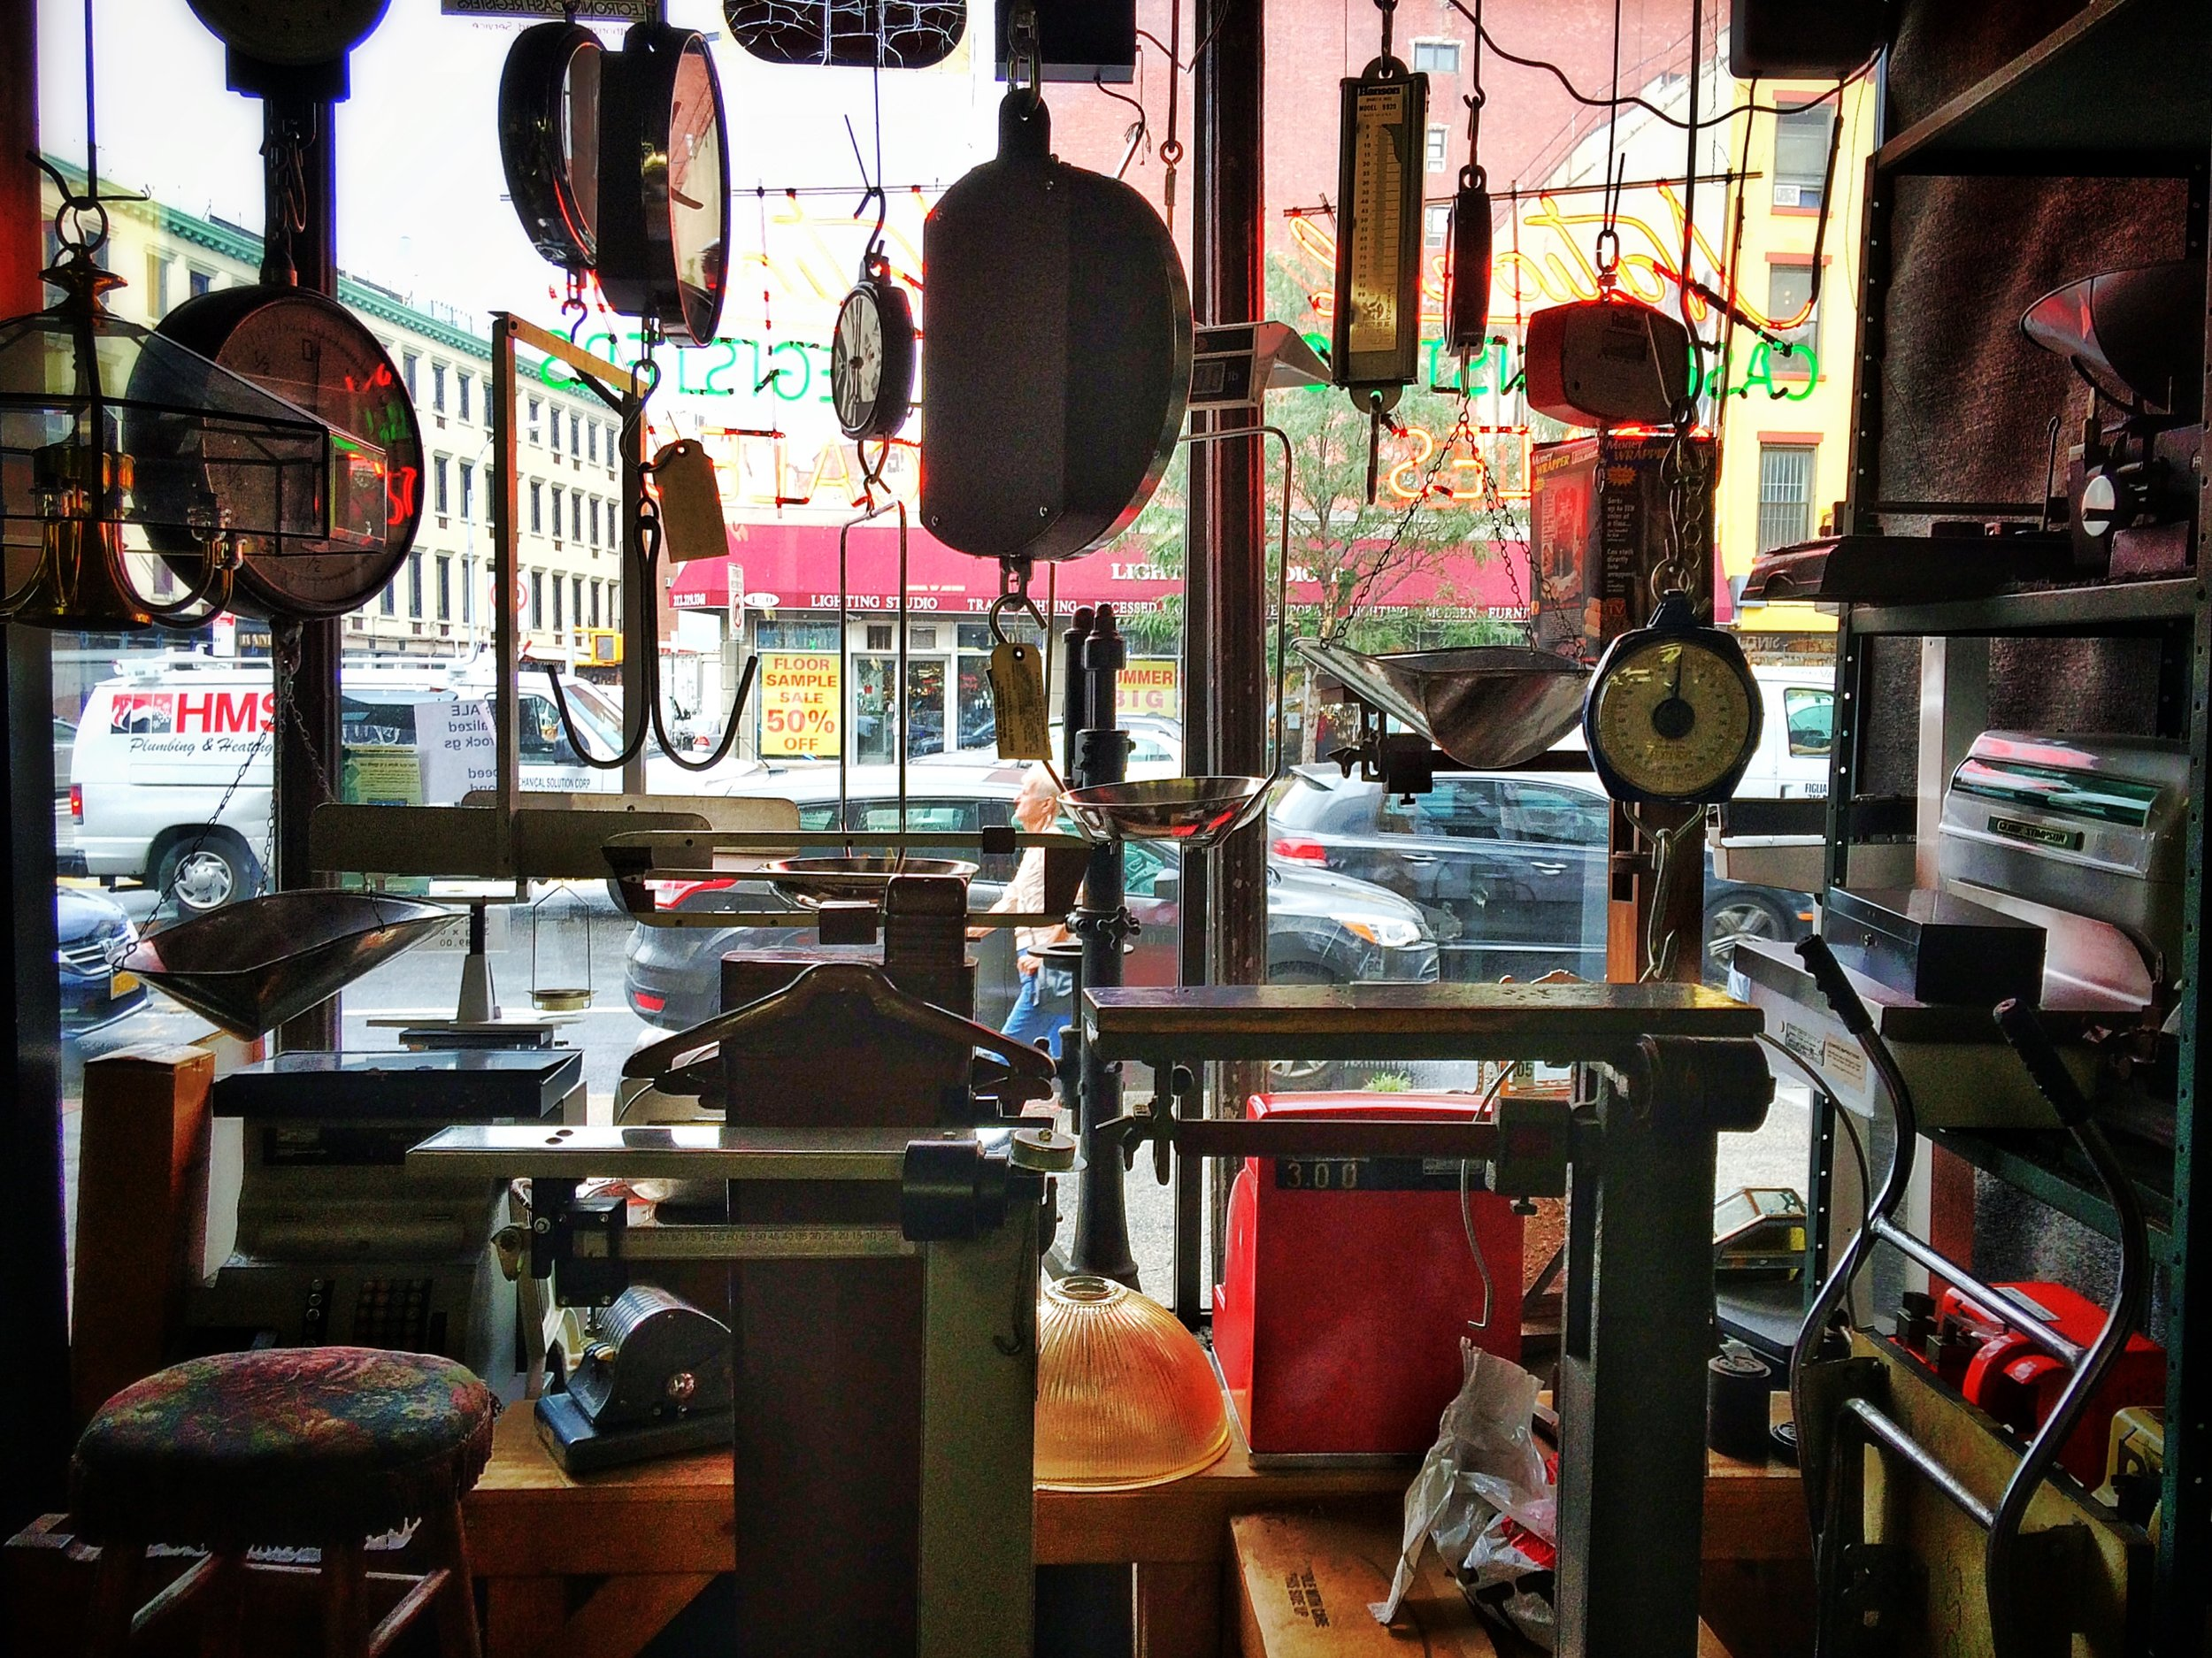 The shop's view of the Bowery through various antique scales and equipment for sale. Photo credit P. Peterson